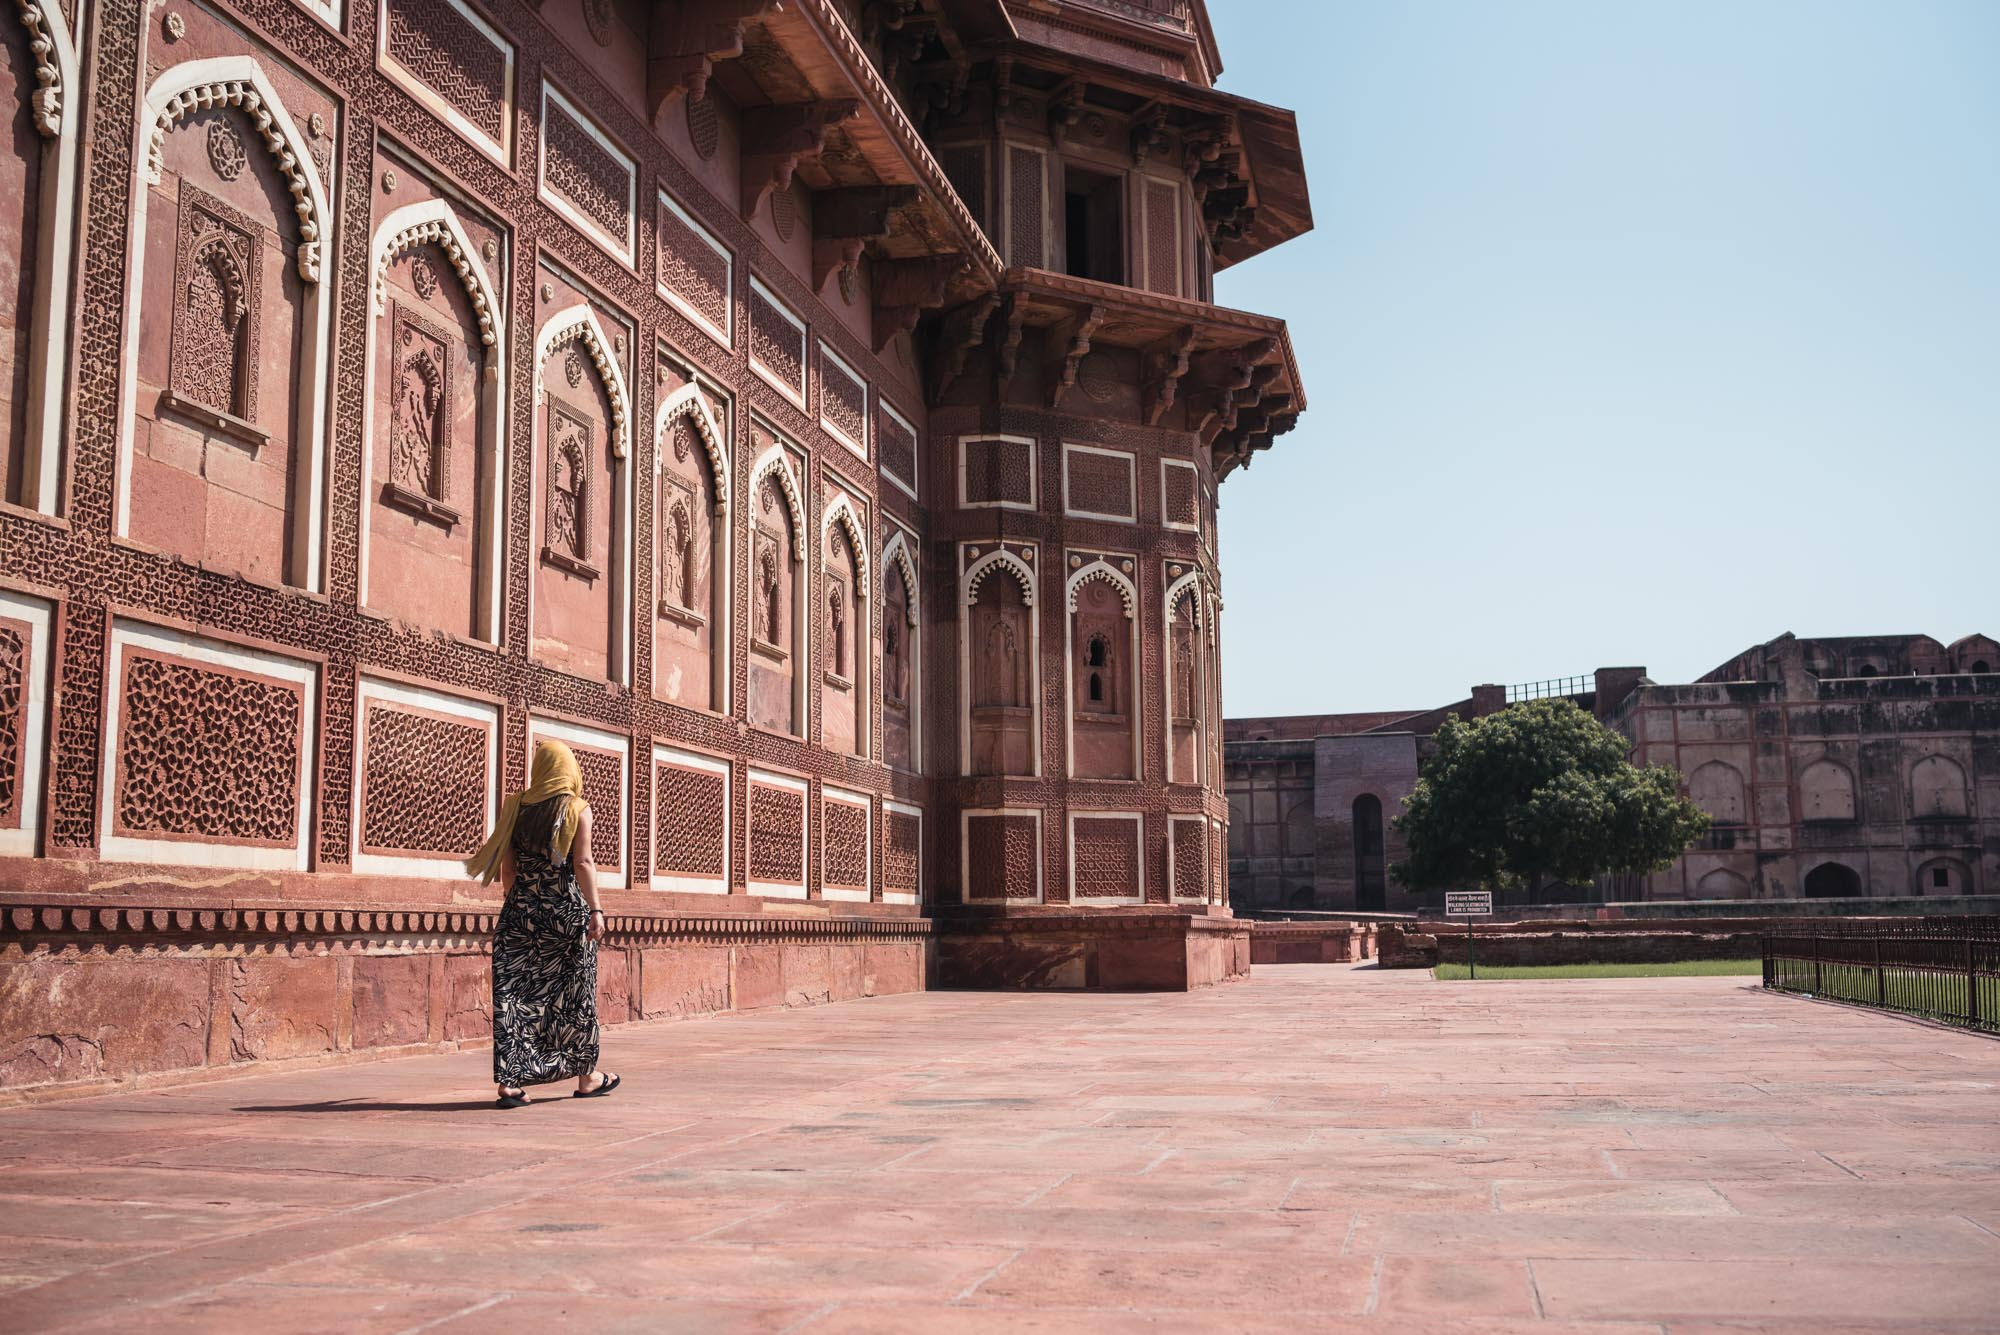 Walking at the Agra Fort